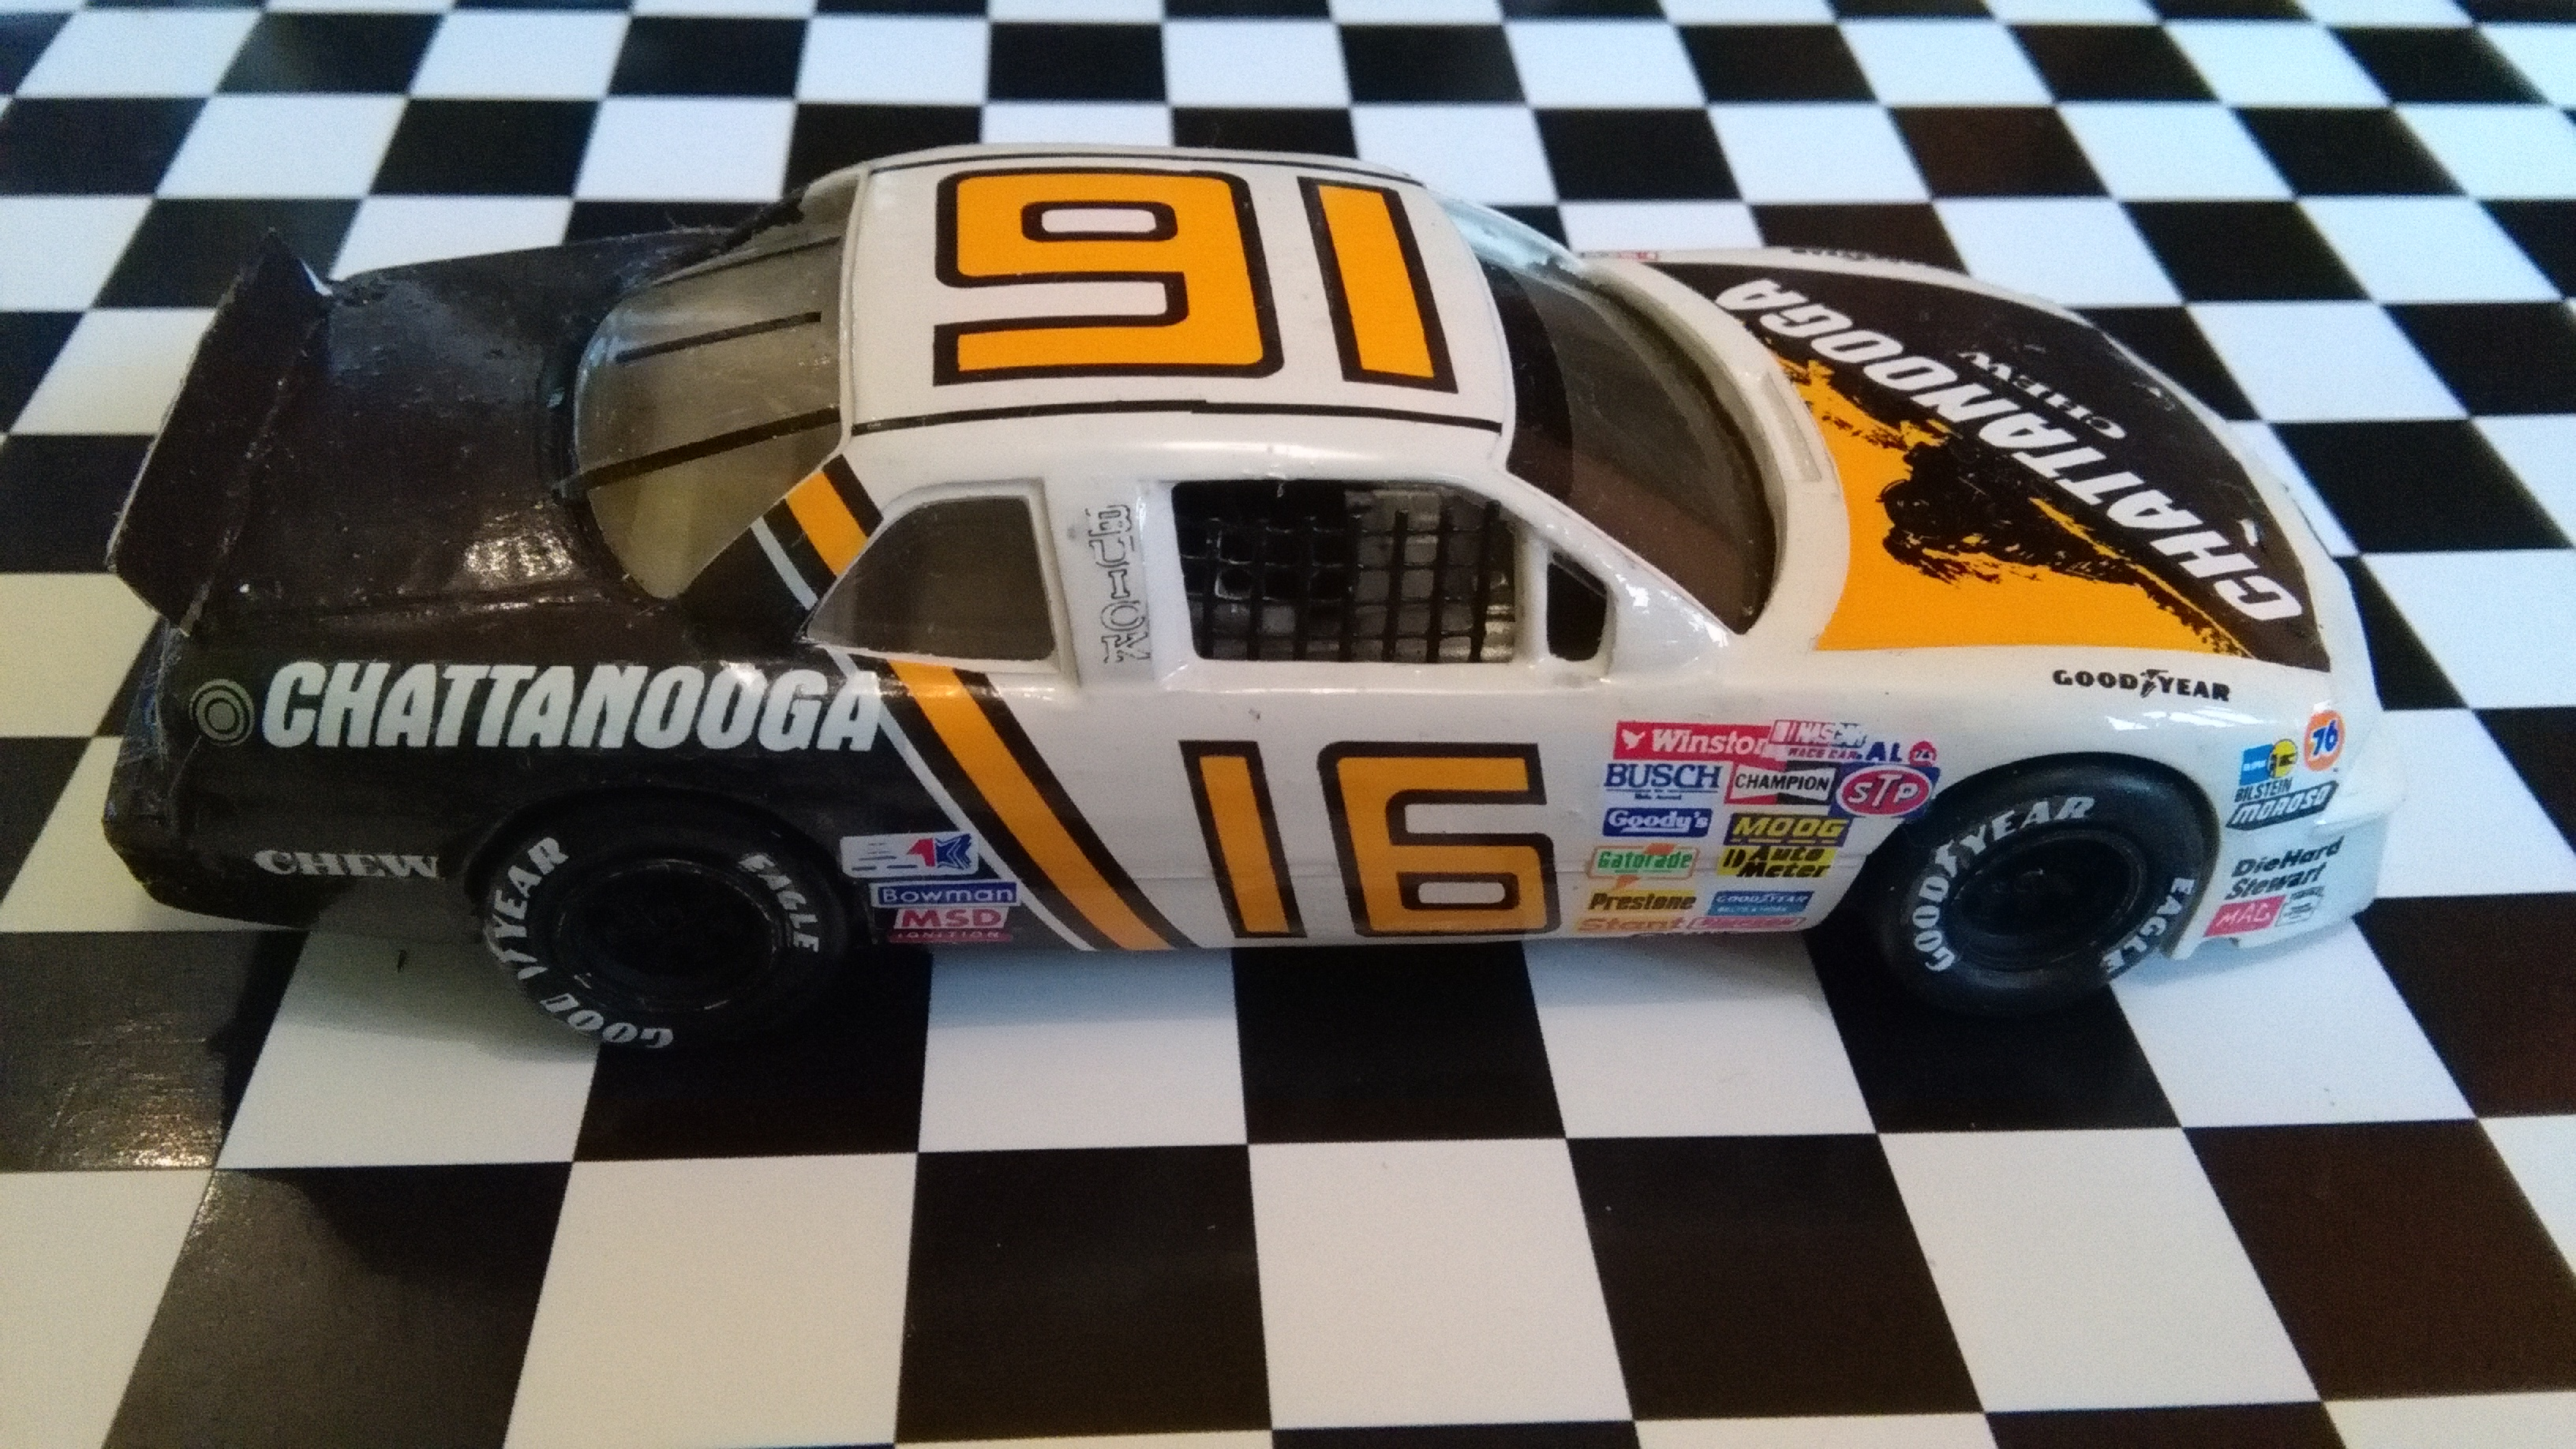 Buick Regal Chattanooga starter 1/43 (not me) 344033IMG20170211141424